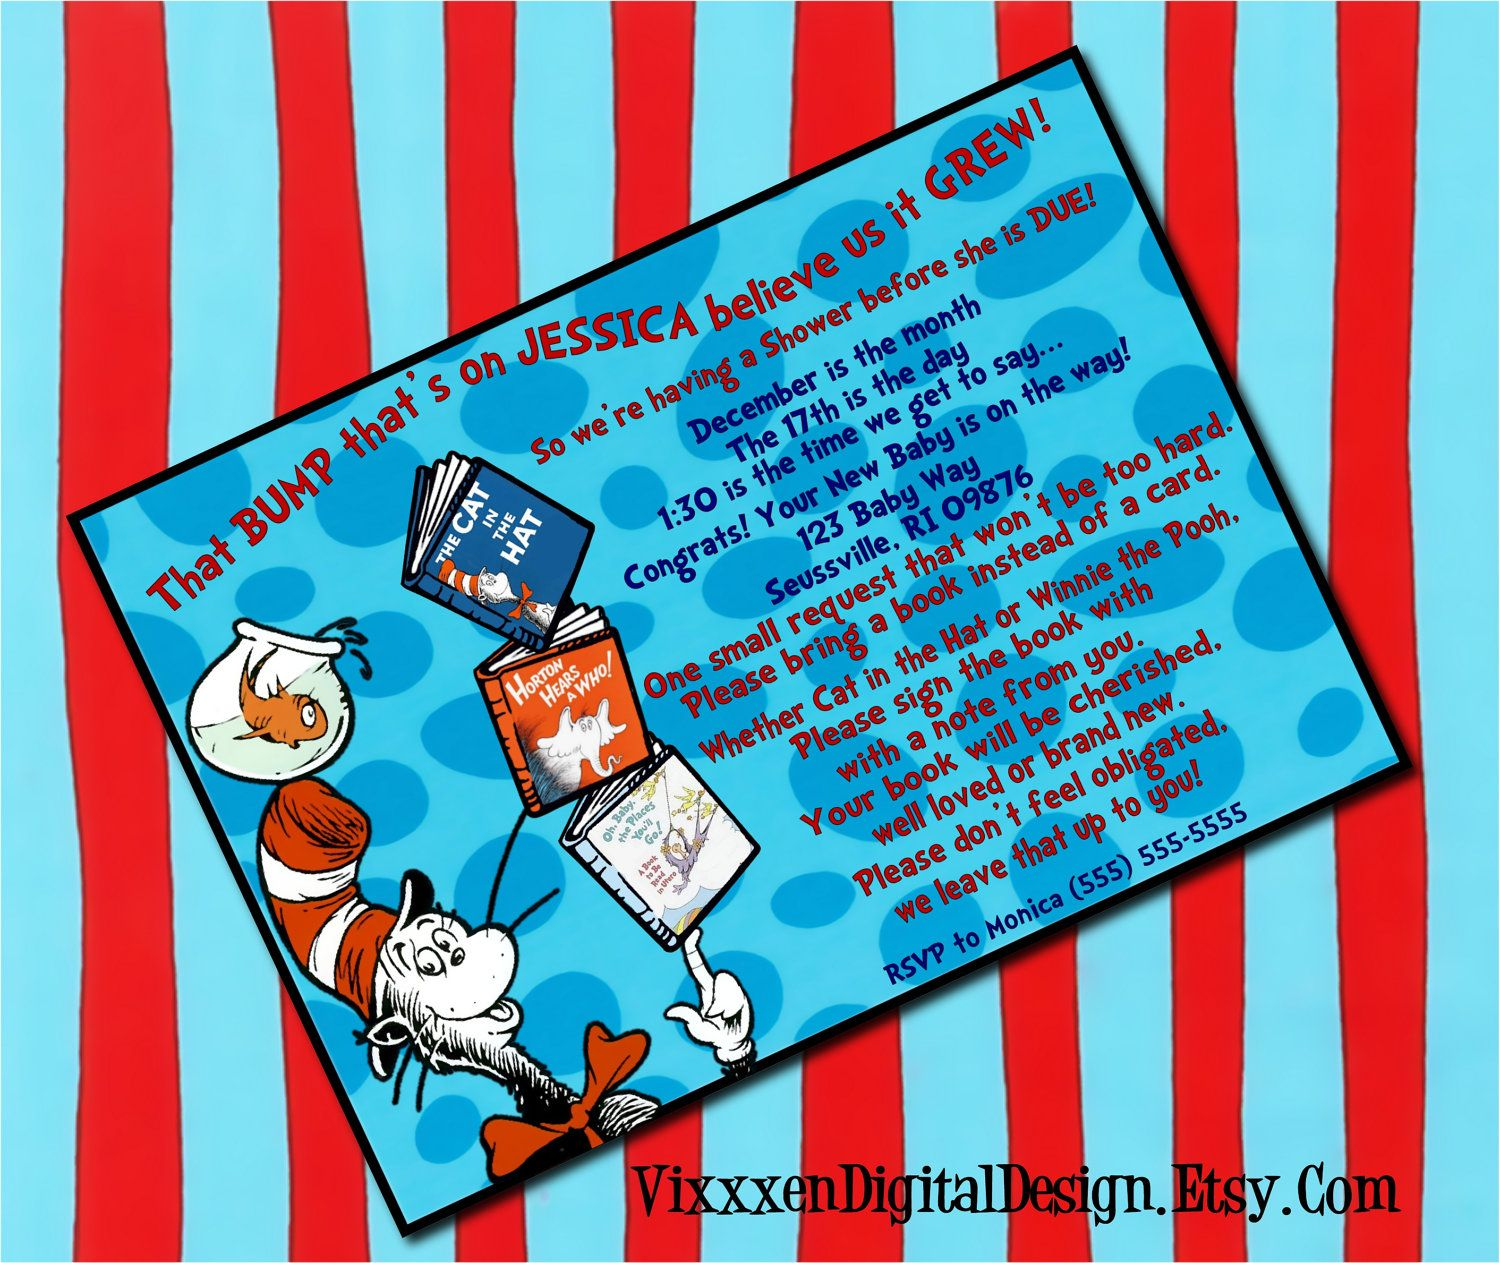 DR. SEUSS baby shower Invitation bring a book personalized ...